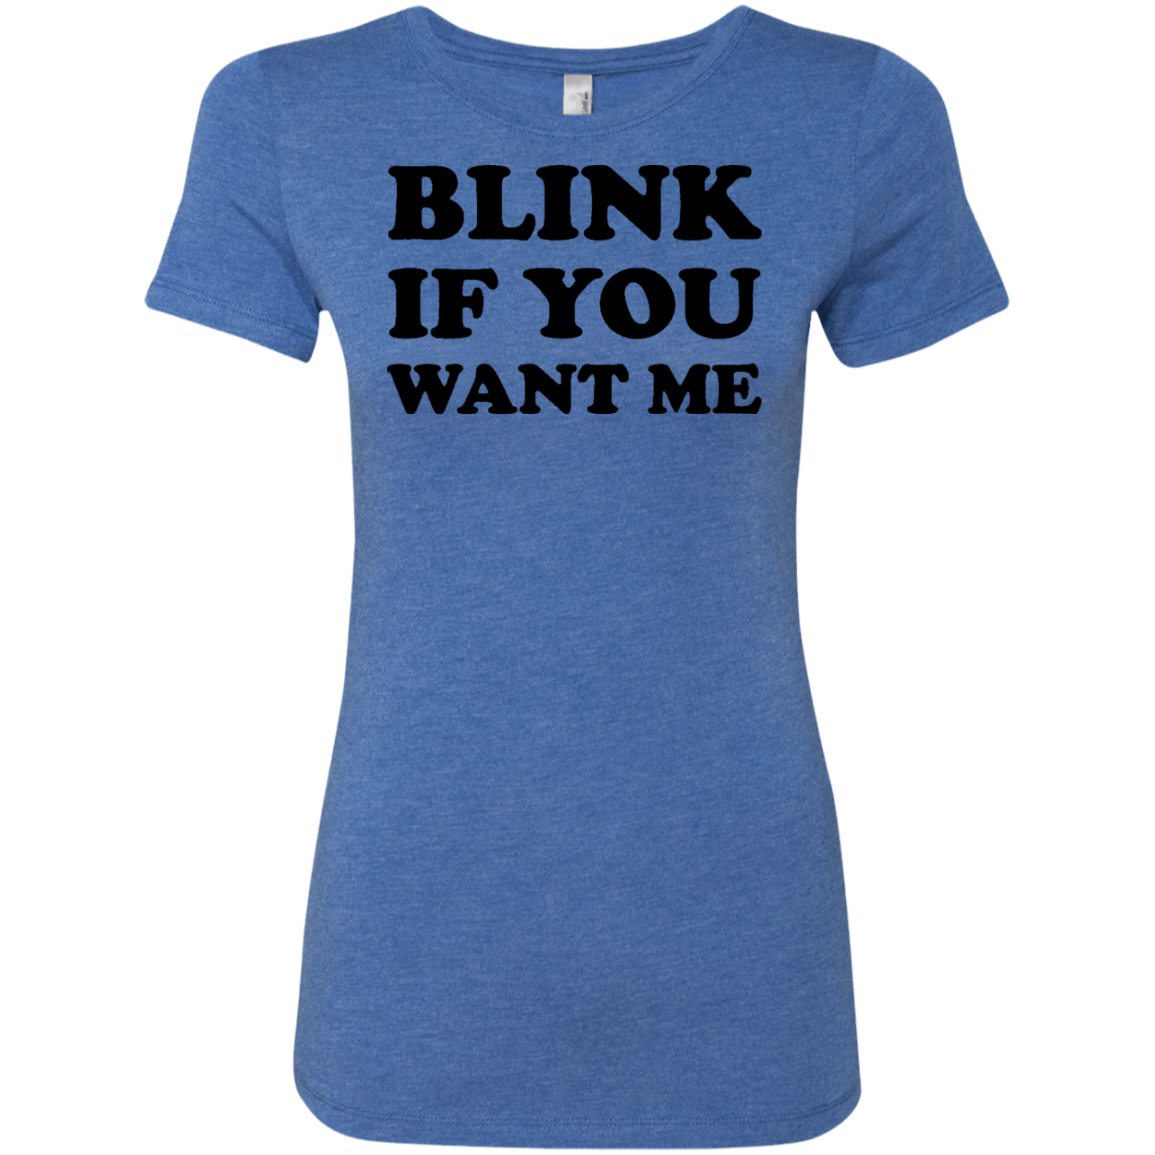 Blink if you Want Me Women's Classic Tee - Trendy Tees